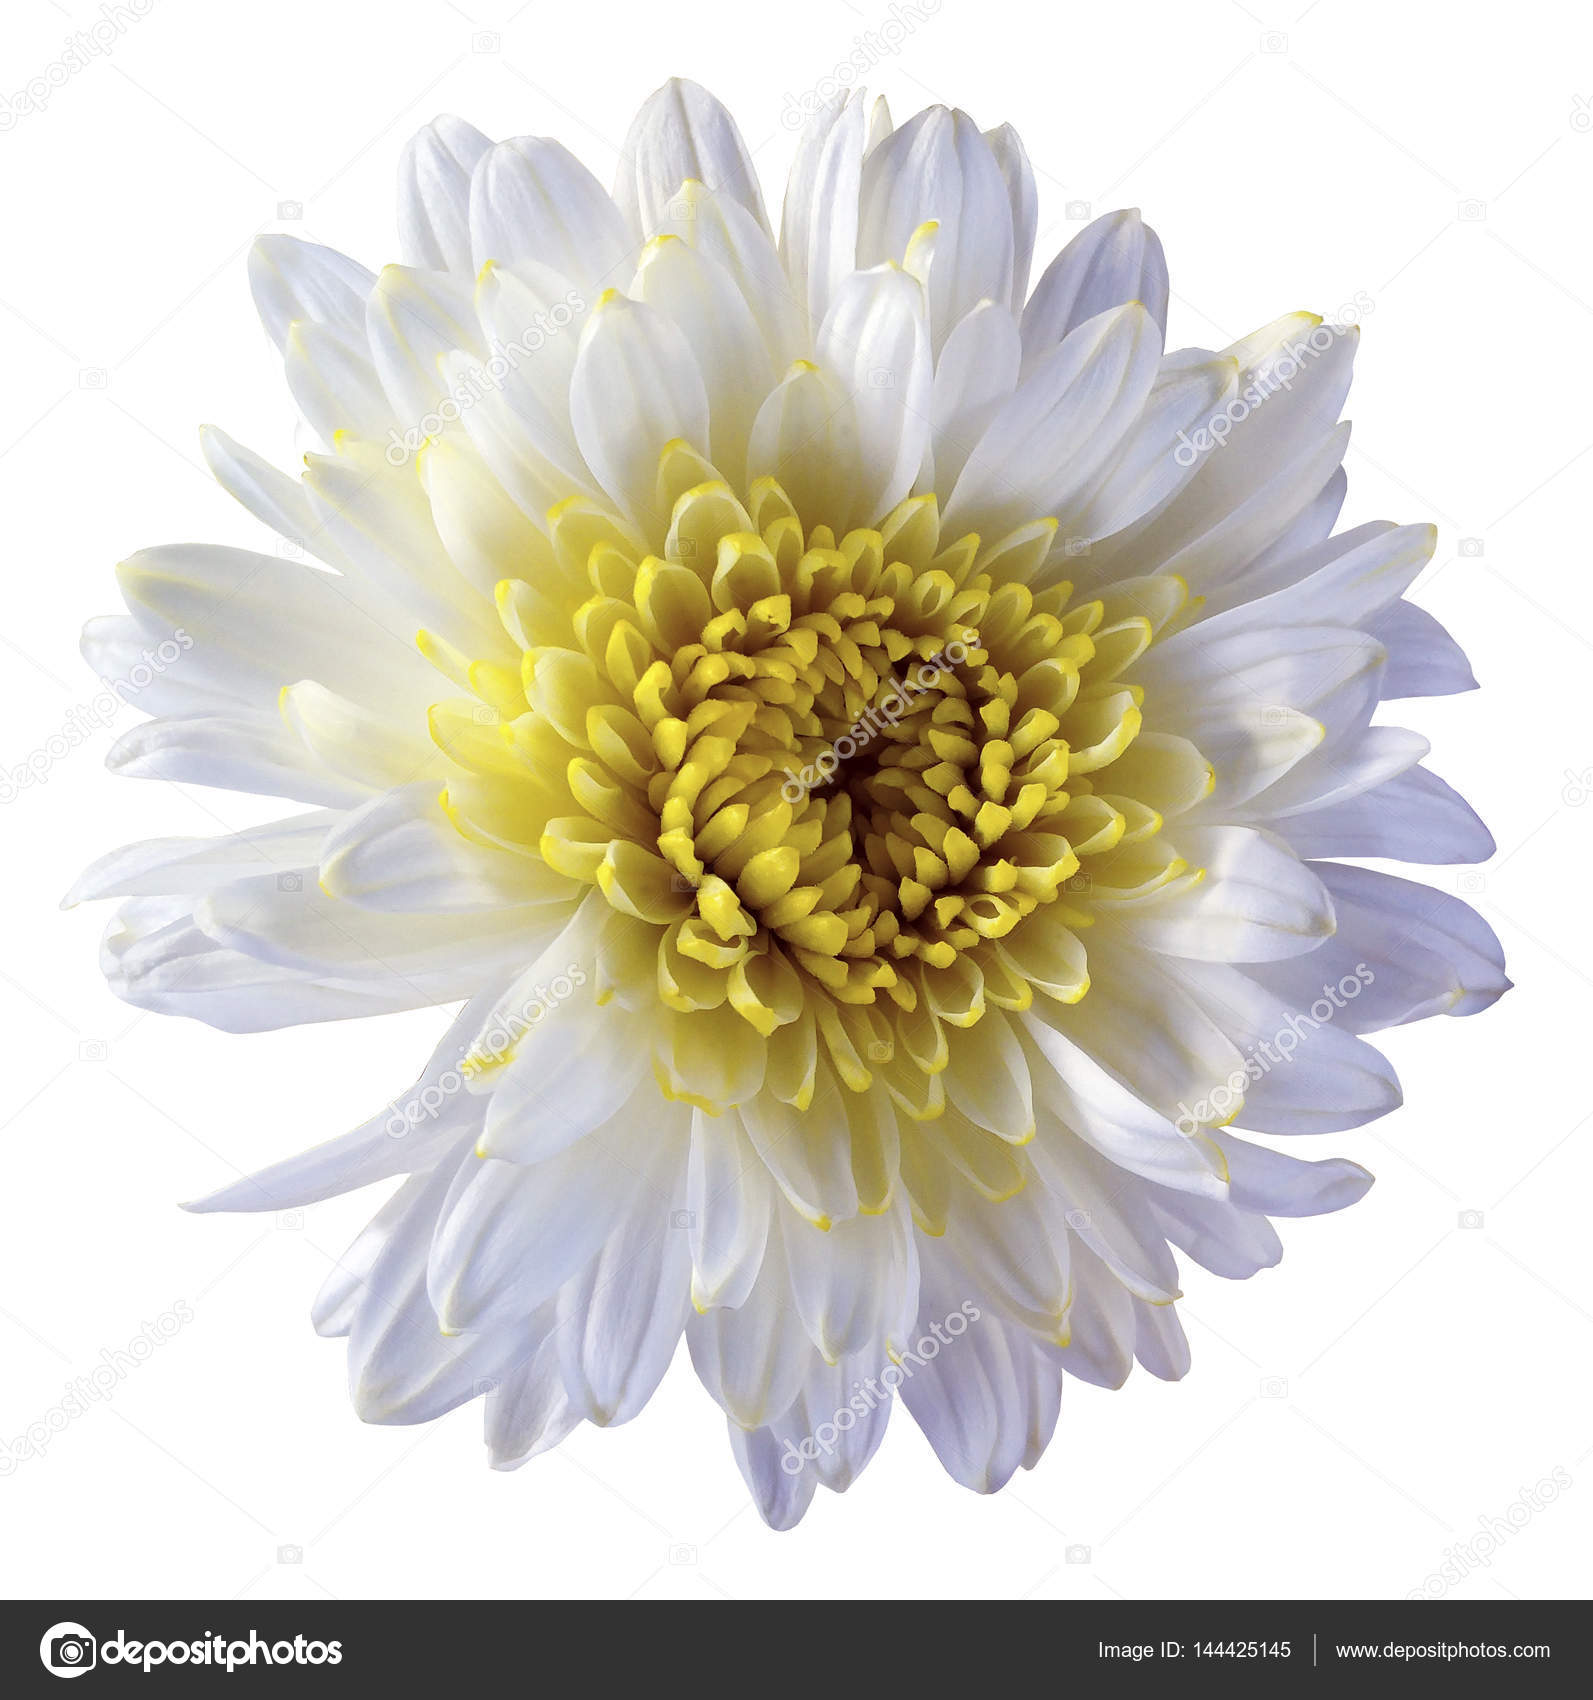 White flower chrysanthemum, garden flower, white isolated background with clipping path. Closeup.